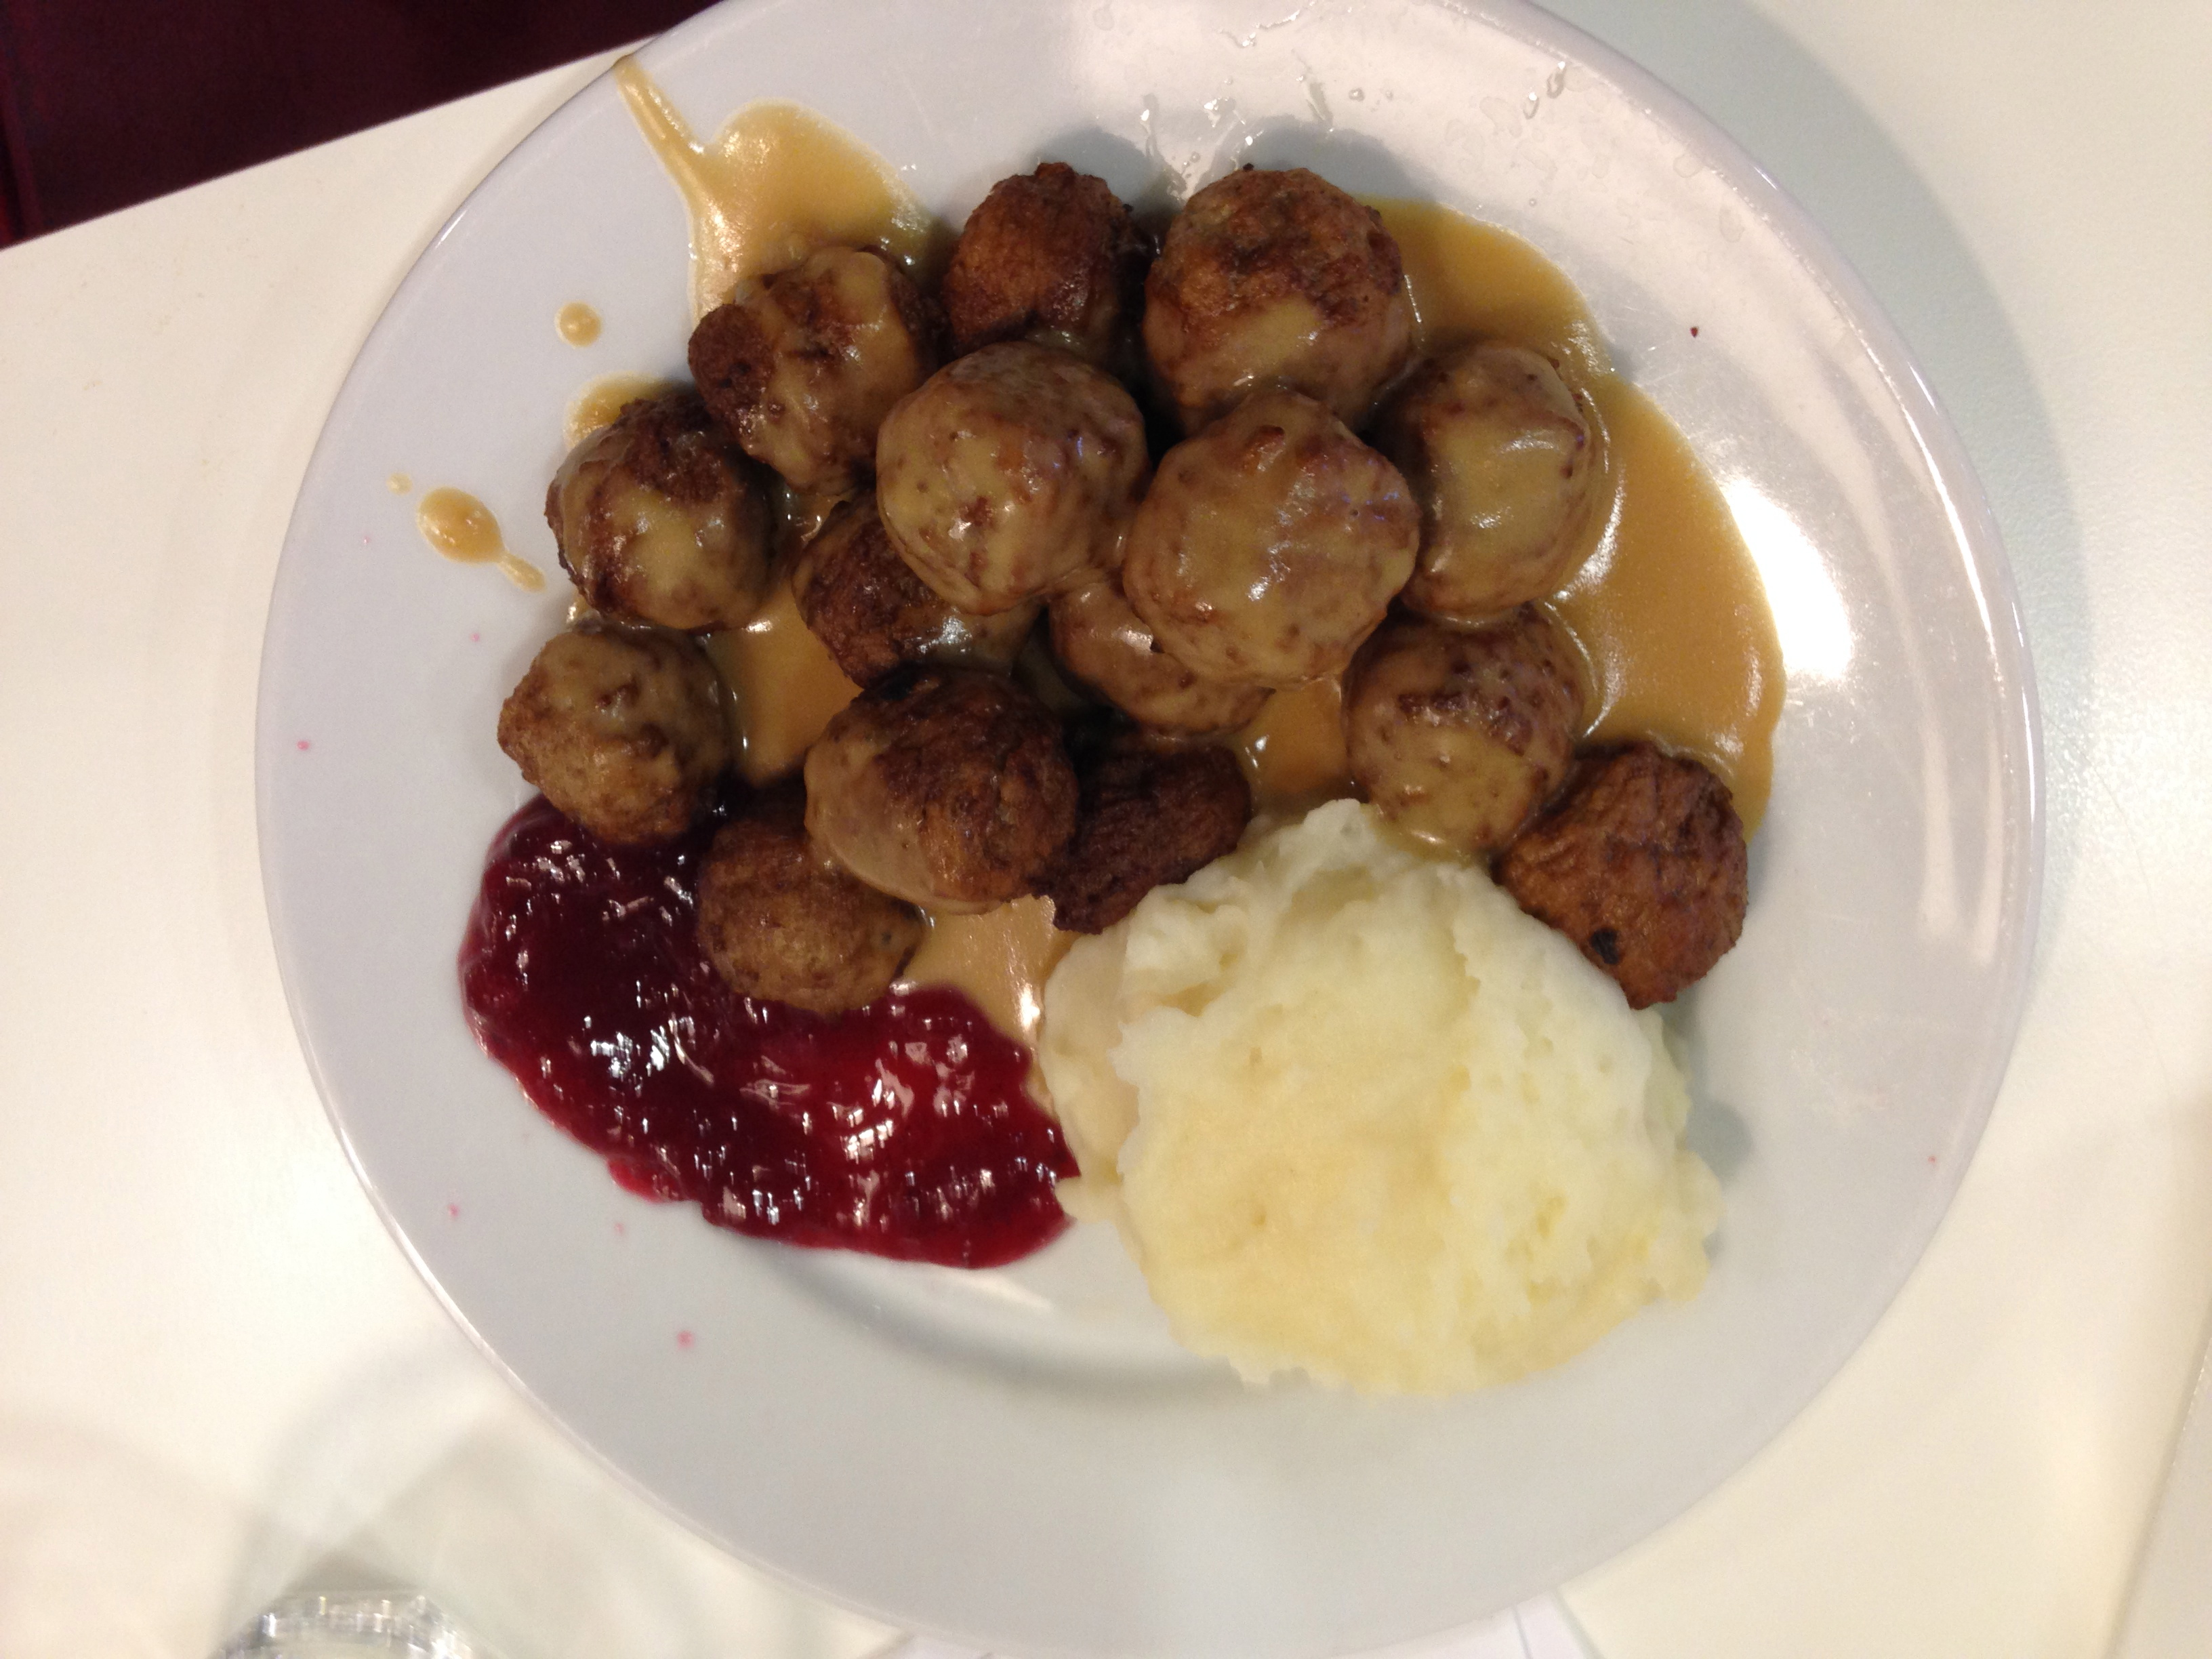 Swedish meatballs with mashed potatoes, gravy and lingonberries